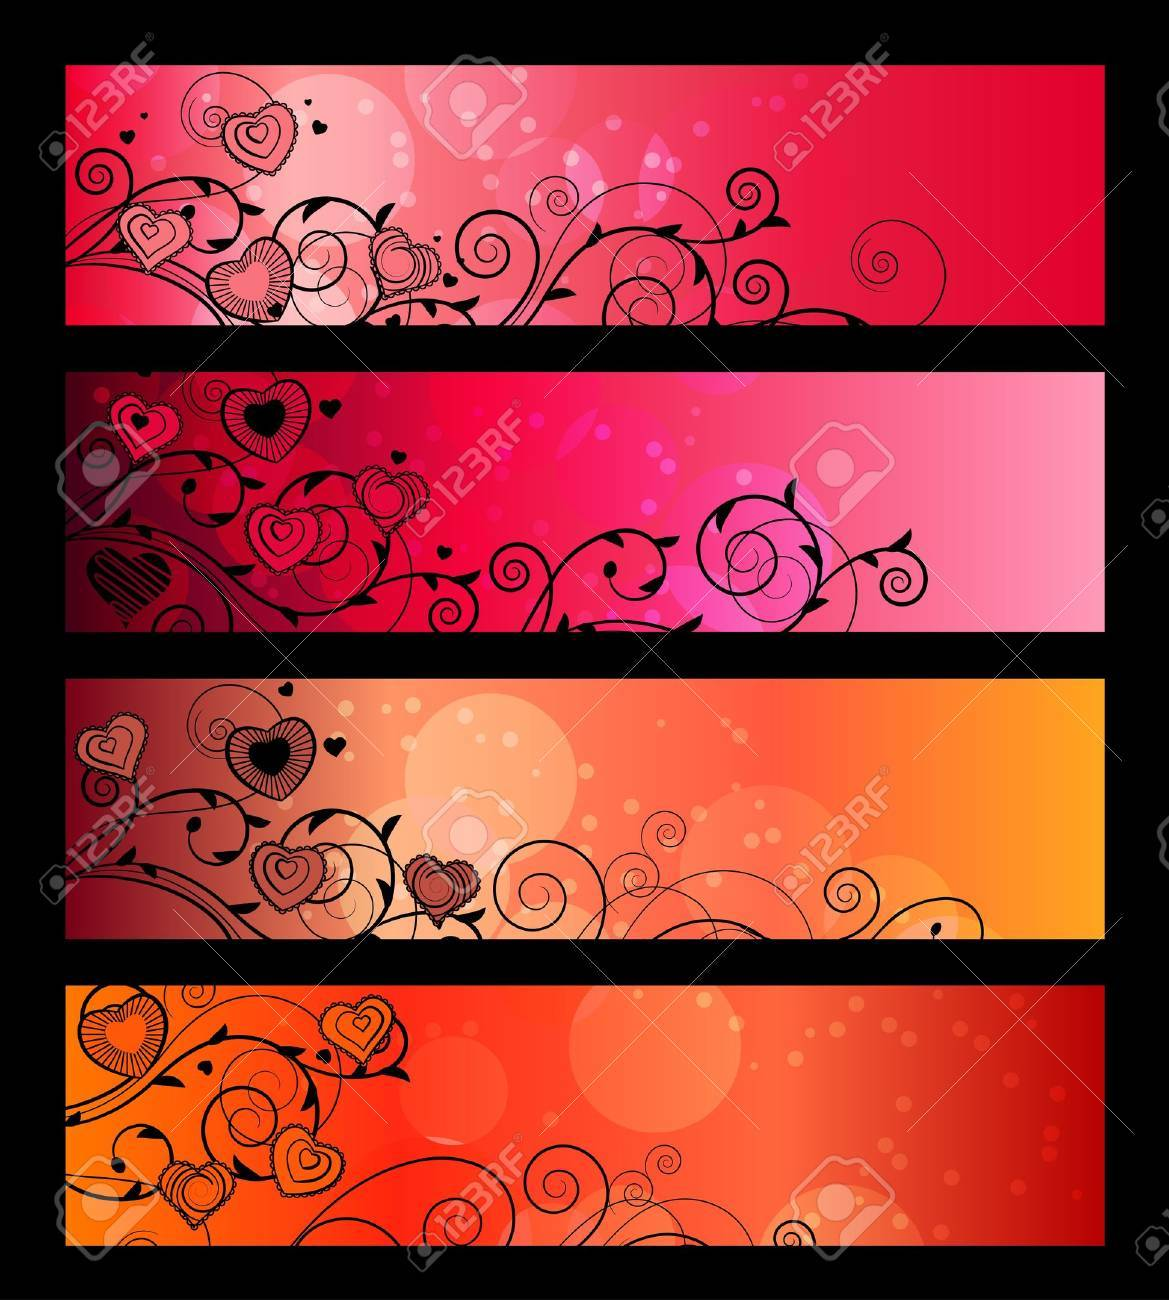 Banners, headers with floral elements Stock Vector - 8813978